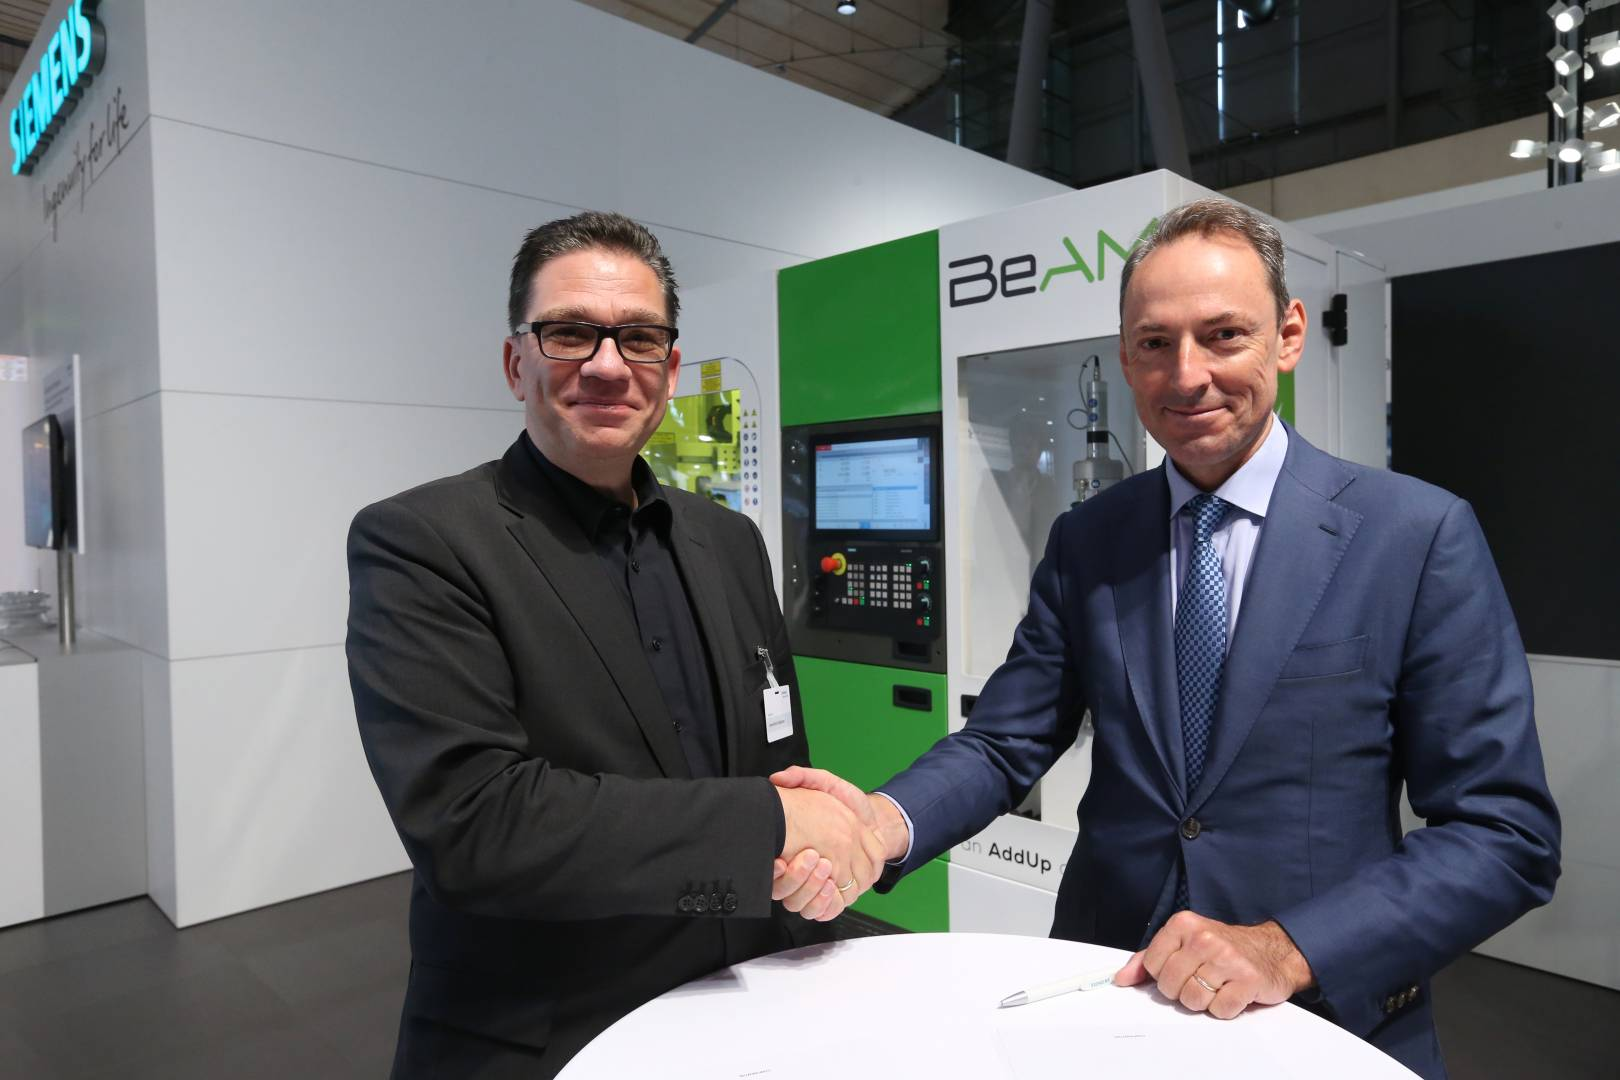 From left: Uwe Ruttkamp, Head of Machine Tool Systems at Siemens Digital Industries and Vincent Gillet, CEO of BeAM.